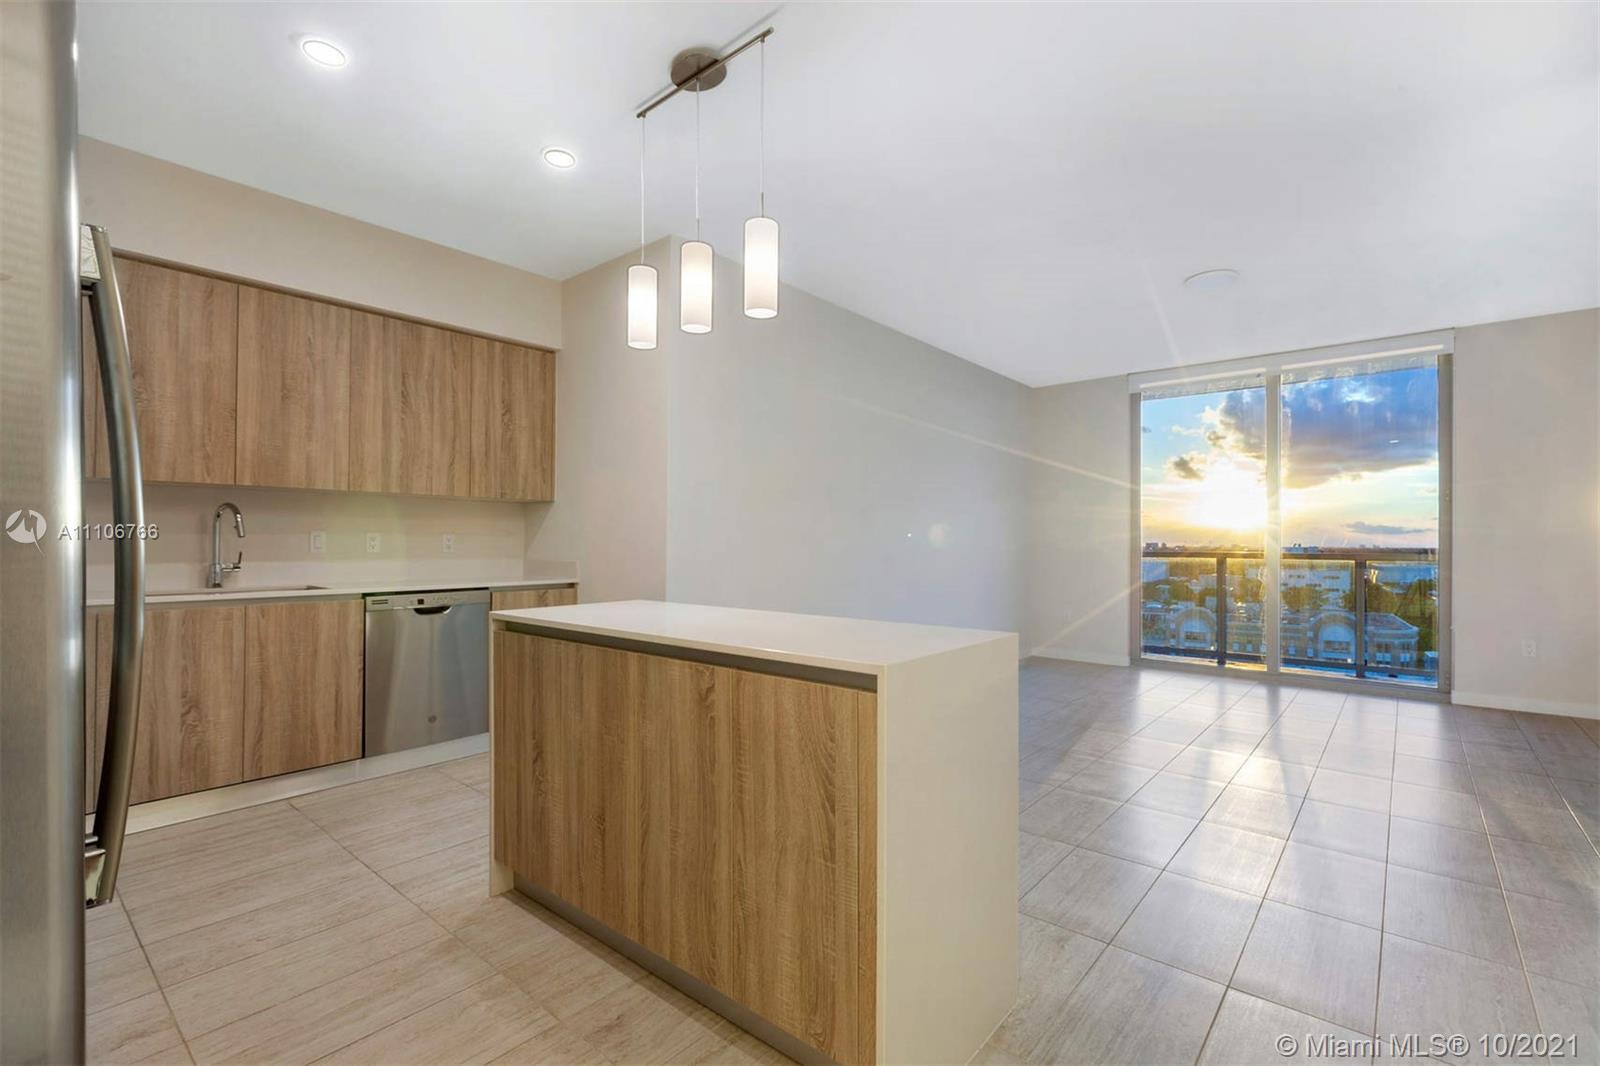 This unit is perfectly located in Miami. Quadro is  only 10 minutes away from both the airport and t